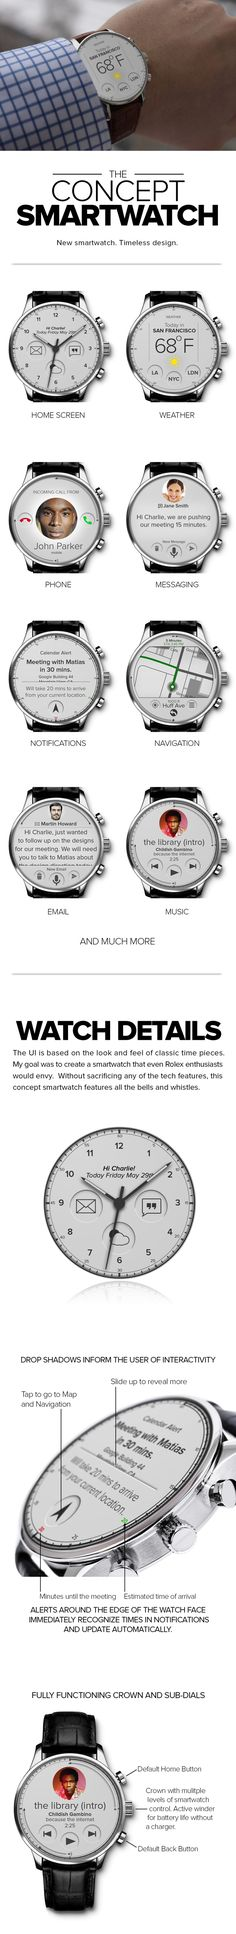 CONCEPT SMARTWATCH by Charlie No, via Behance